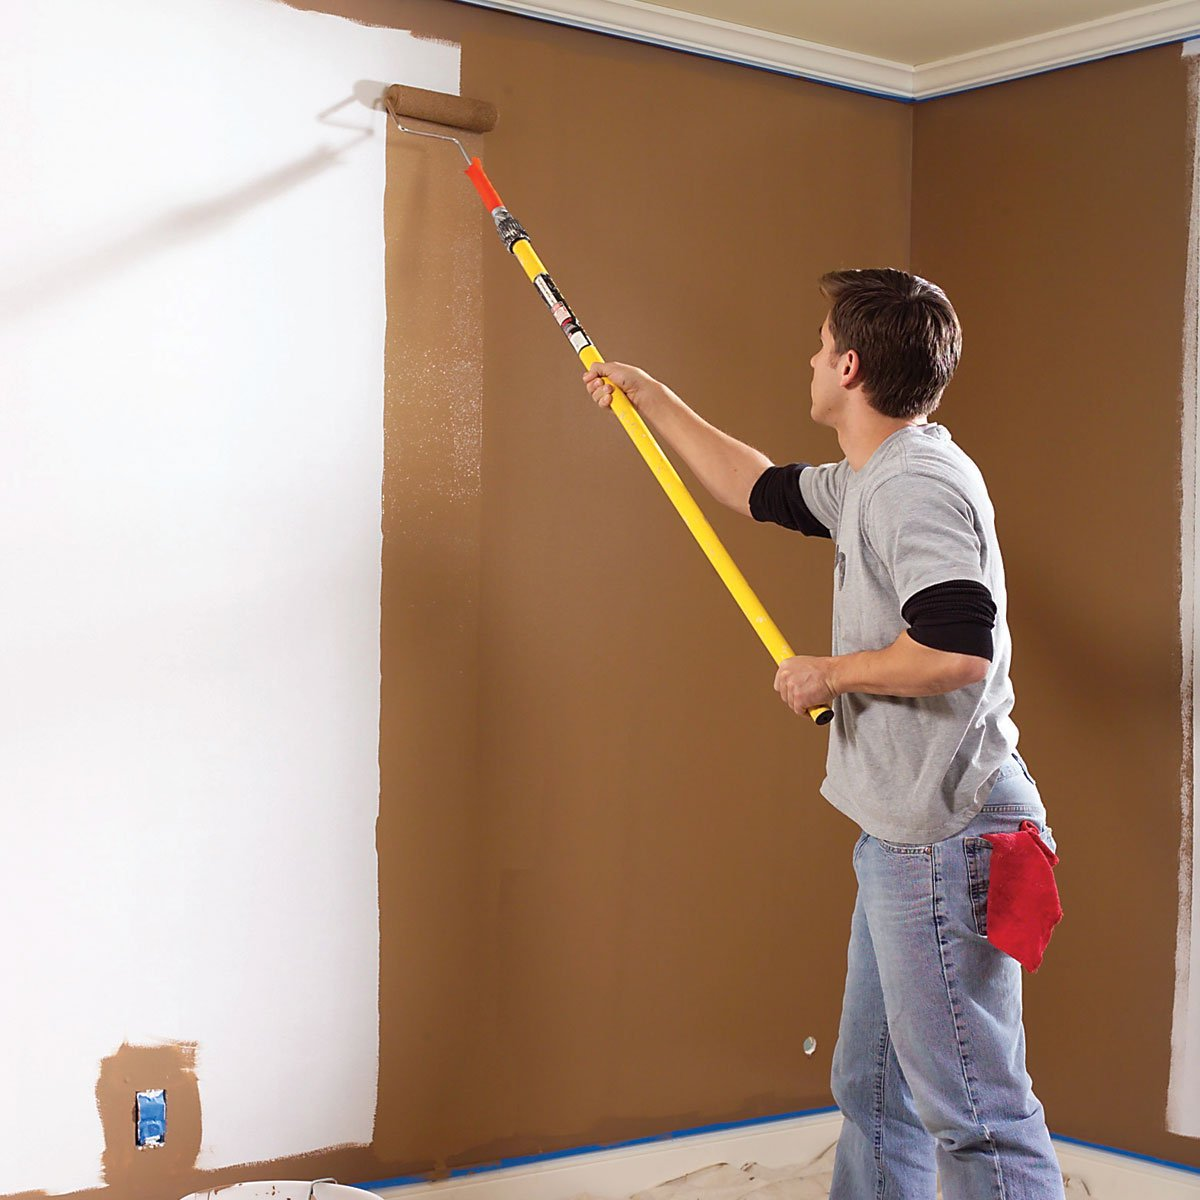 Interior Painting-Port St. Lucie Home Remodeling & Drywall Contractor Services-We offer Home Remodeling Services, Drywall Repair, Interior Painting, Drywall Installation, Exterior Painting, Residential Painting, Commercial Painting, Drywall Contracting, Wallpaper Removal, Custom Ceilings, Popcorn Removal, Smooth Ceiling, Tile Installation, Floor Installation, Bathroom Remodeling, Kitchen Remodeling, Cabinet Installation, and more contracting services!